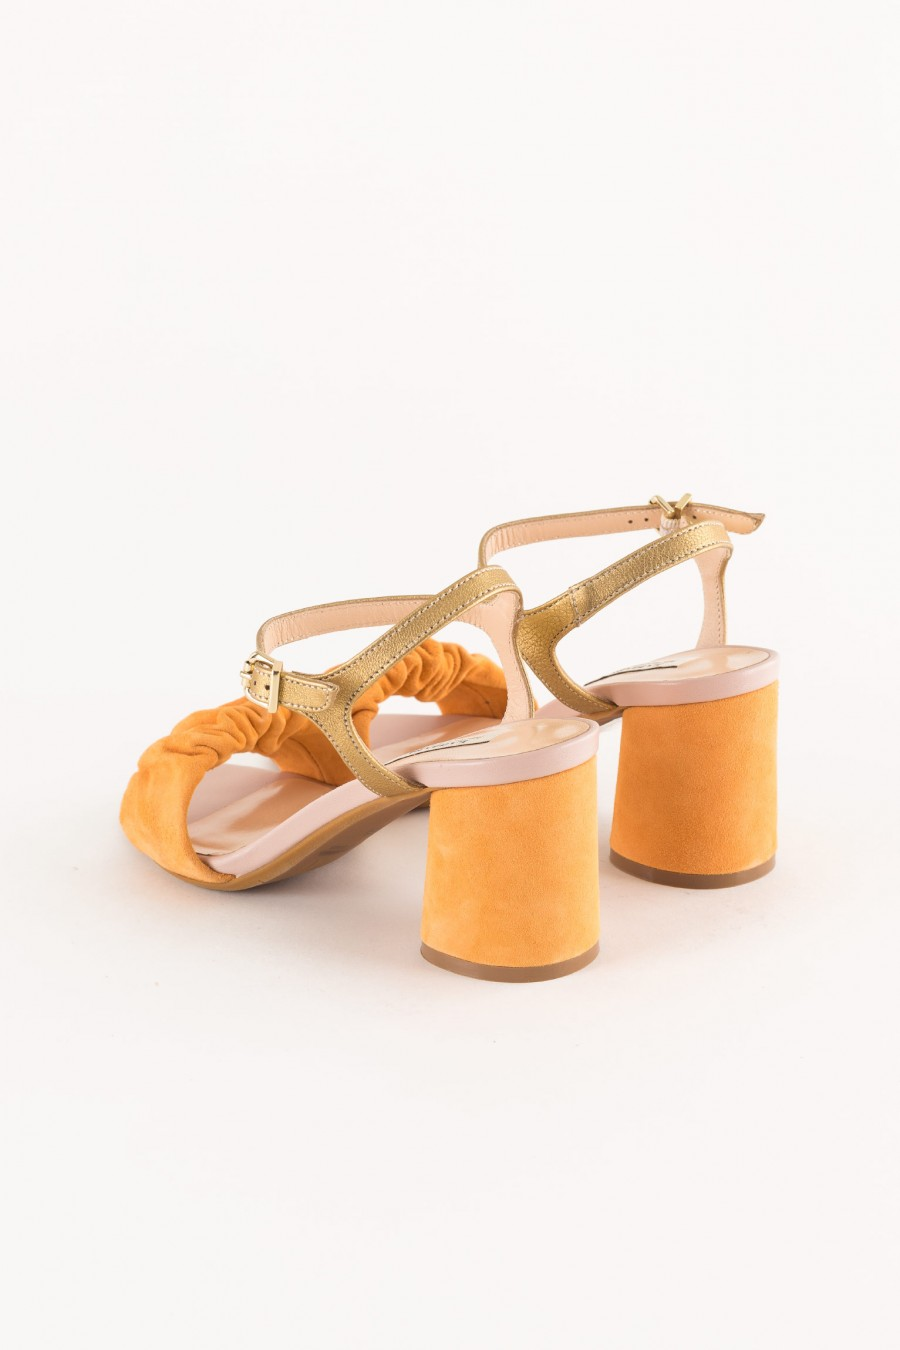 orange shoe rounded heel